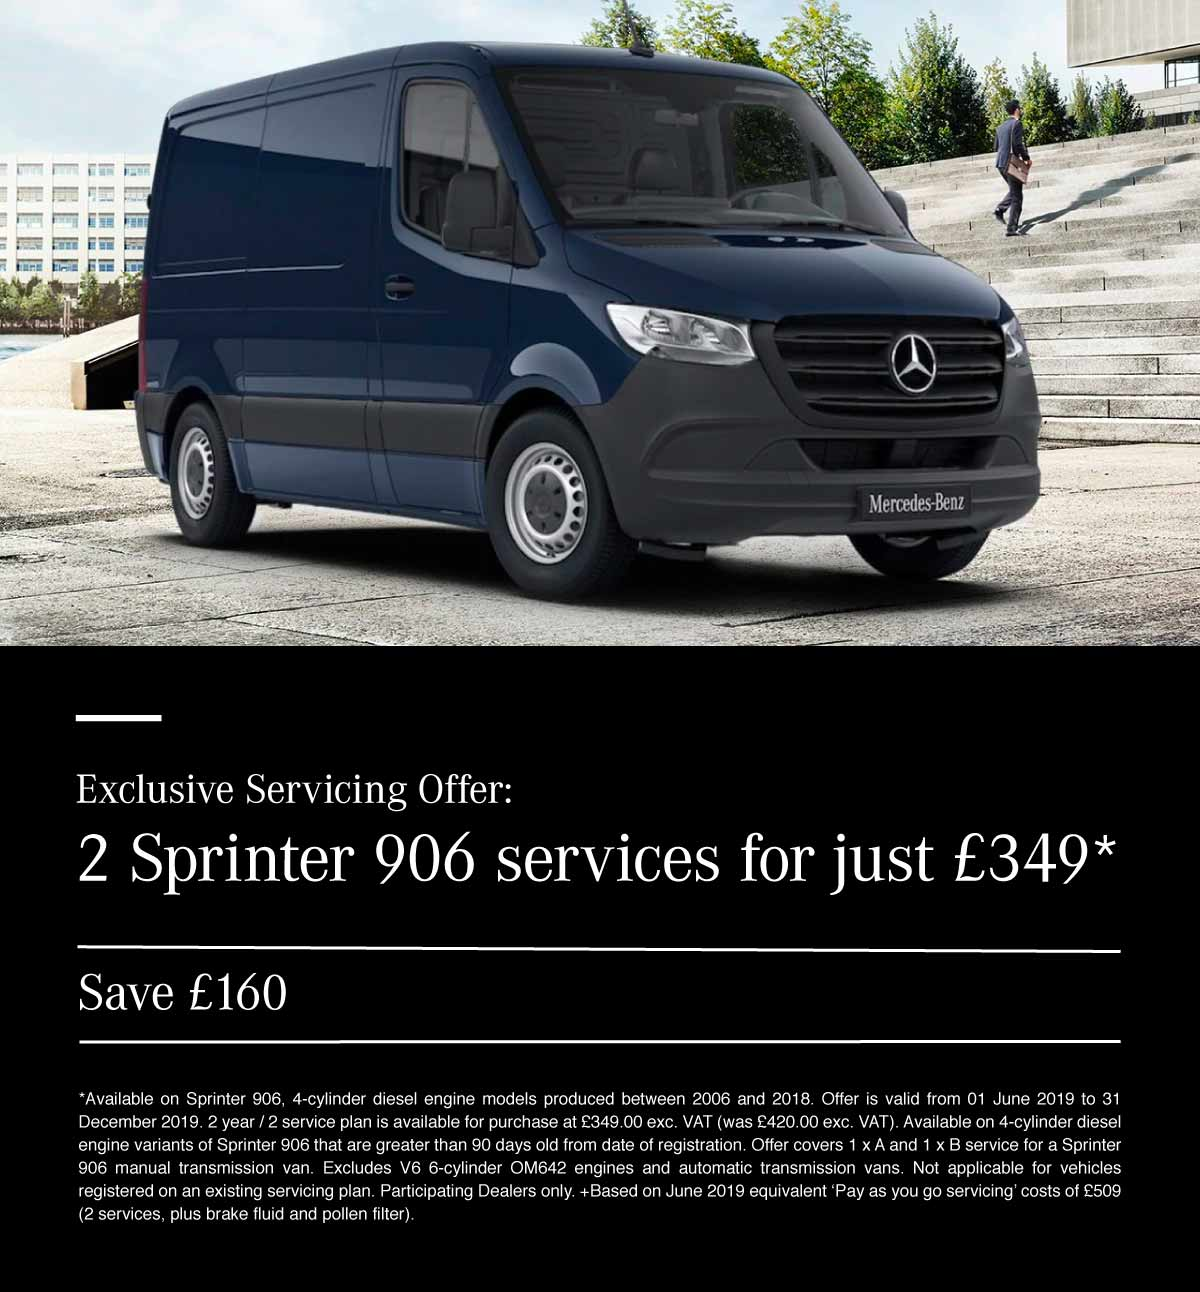 Sprinter Van Service Offer